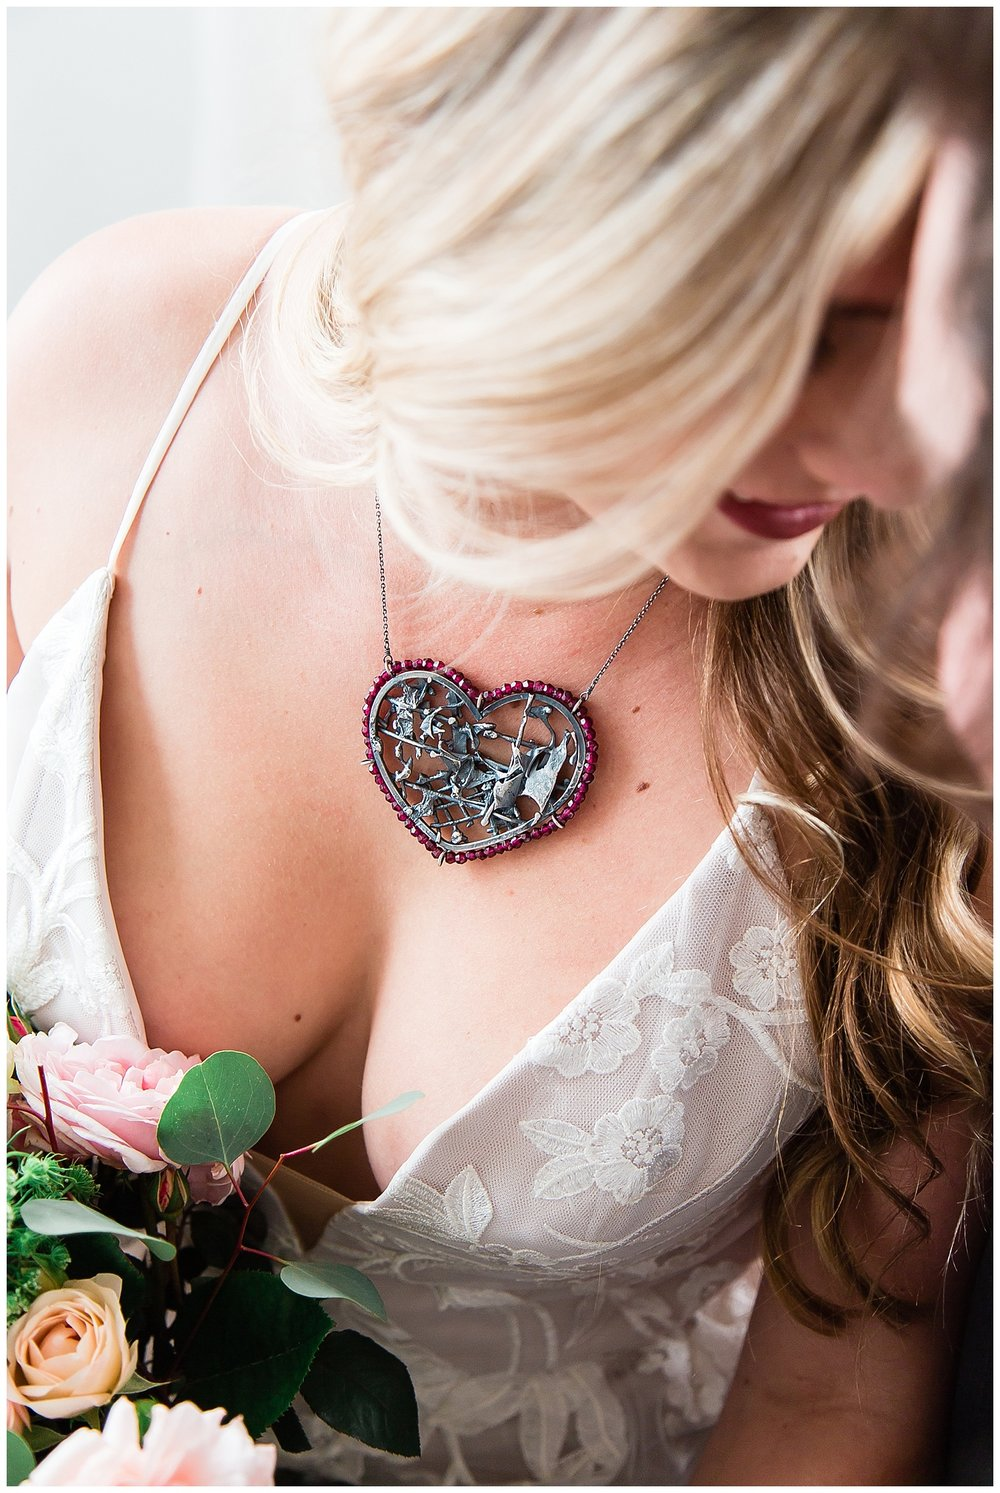 Kelley williams photography Erica freestone necklace